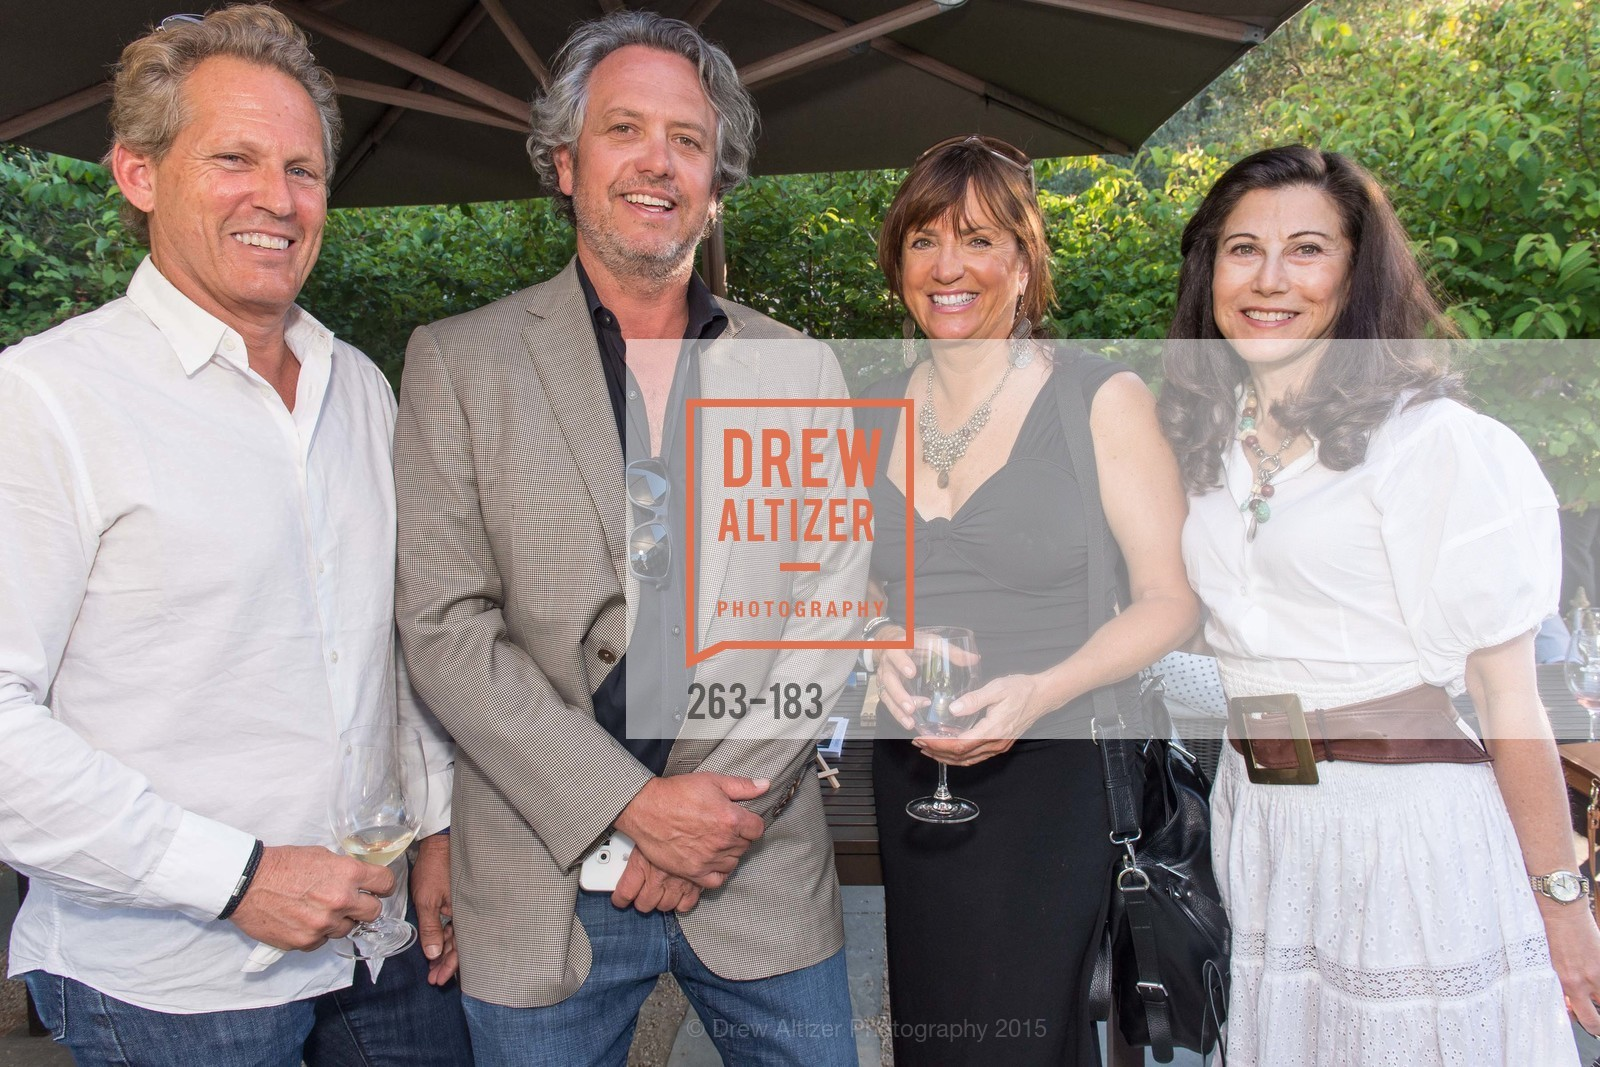 Gary Laforge, Randy Eckhardt, Dana Cappiello, Adrienne Mally, Oyster Cup Polo Tournament Preview Party Hosted by Cerro Pampa Polo Club and Stick & Ball, Ma(i)sonry. 6711 Washington St, June 25th, 2015,Drew Altizer, Drew Altizer Photography, full-service agency, private events, San Francisco photographer, photographer california